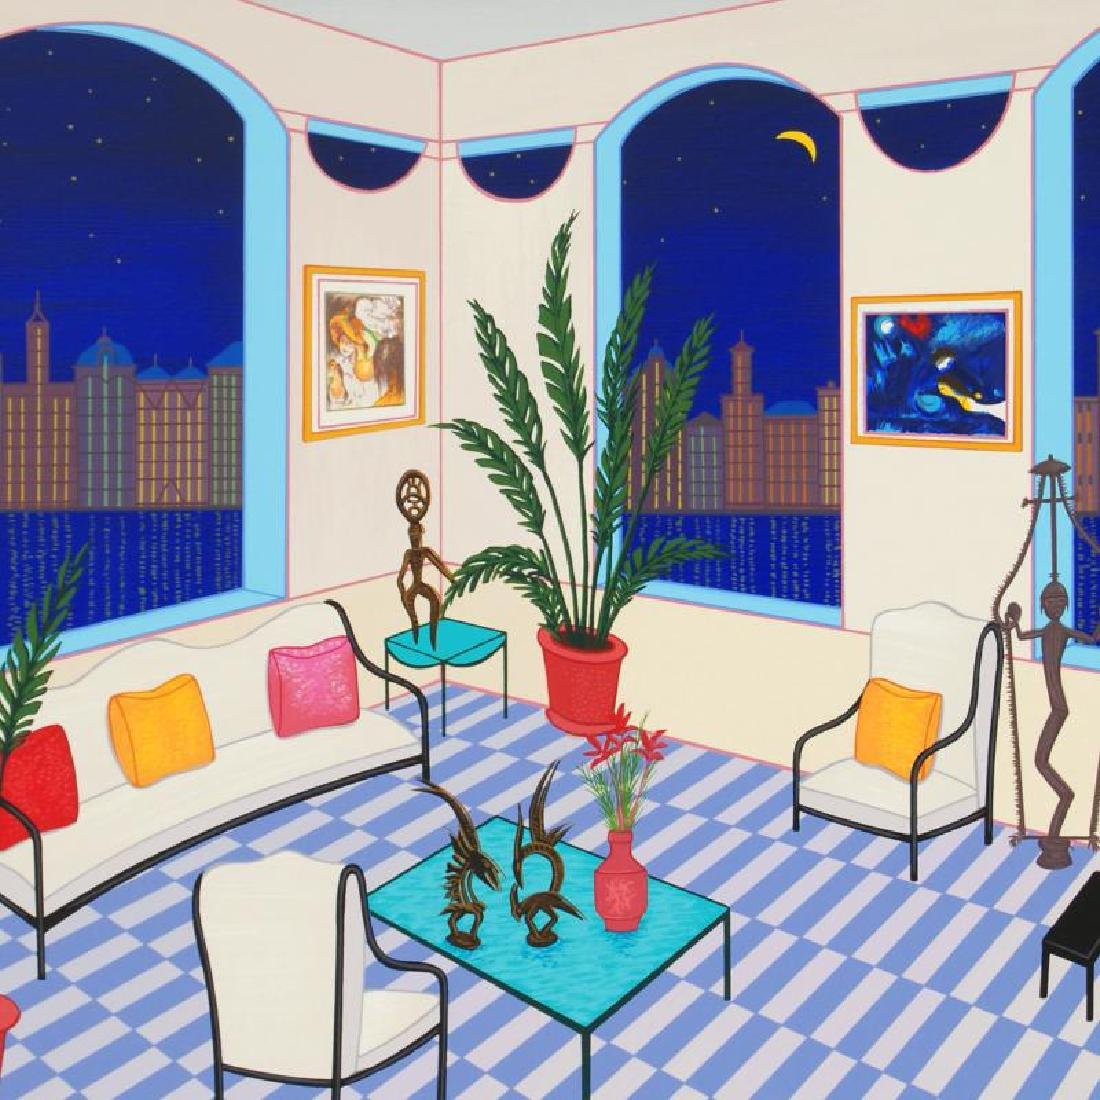 Interior with Primitive Art Limited Edition Serigraph - 4